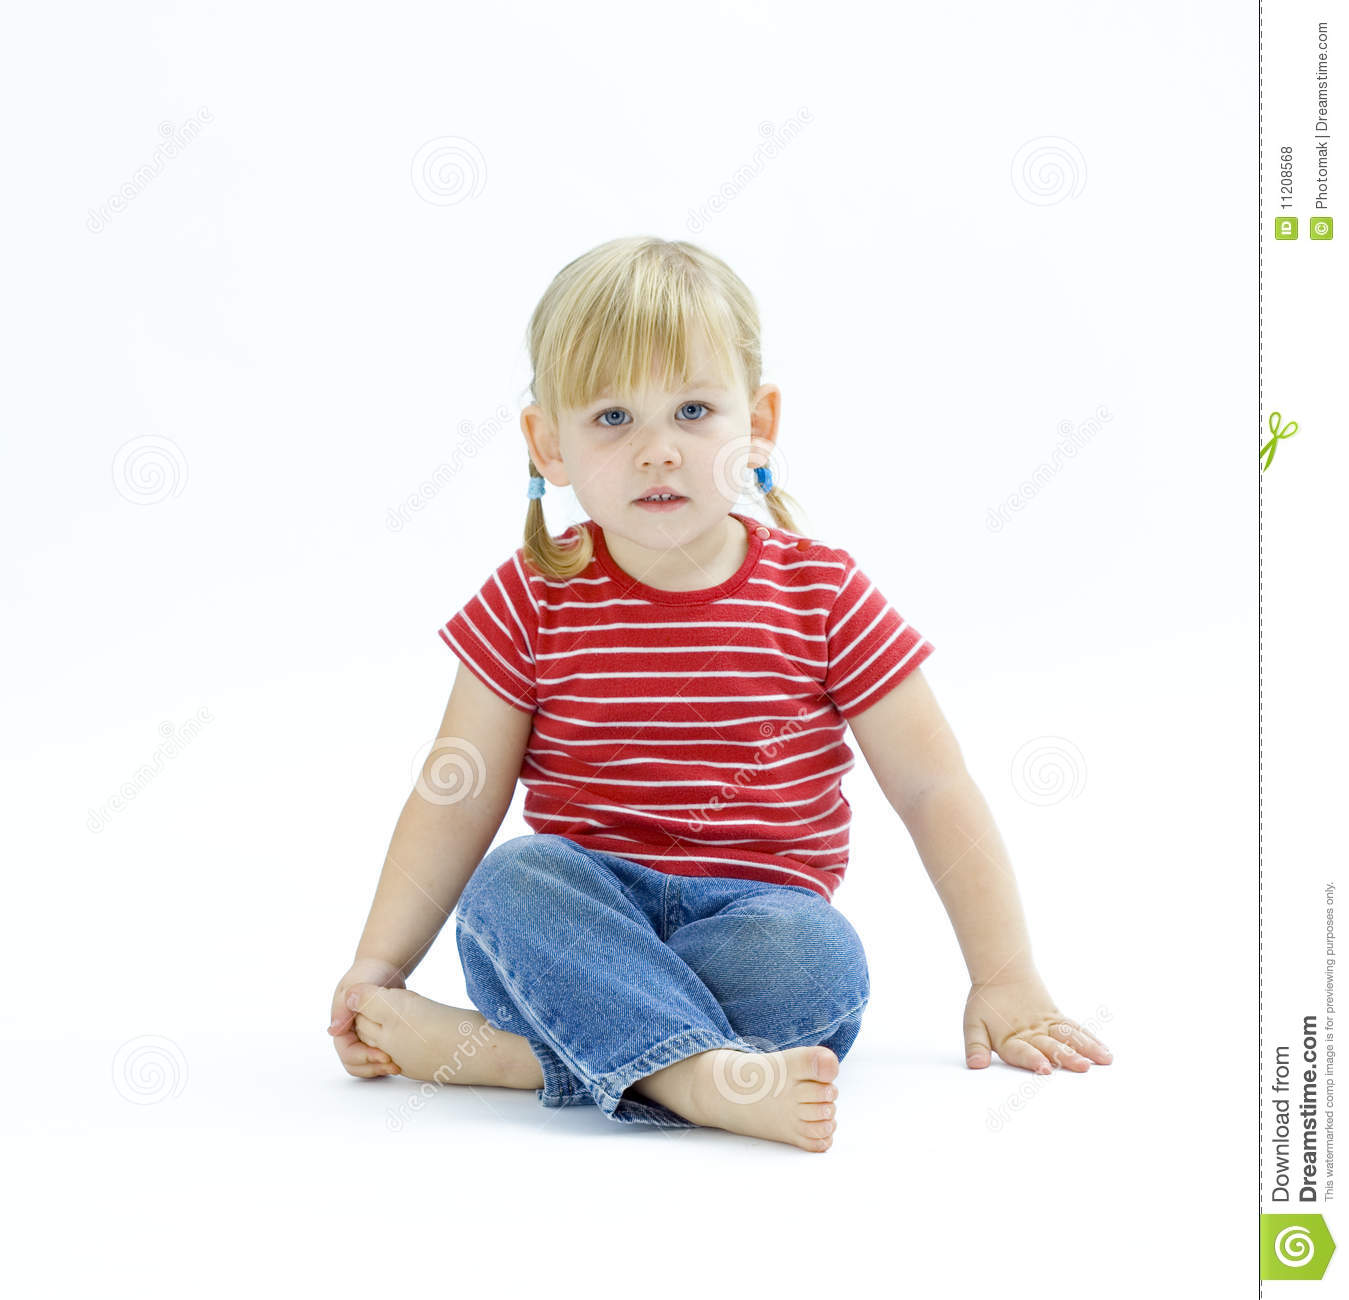 Sitting squat on the floor little girl royalty free stock photos